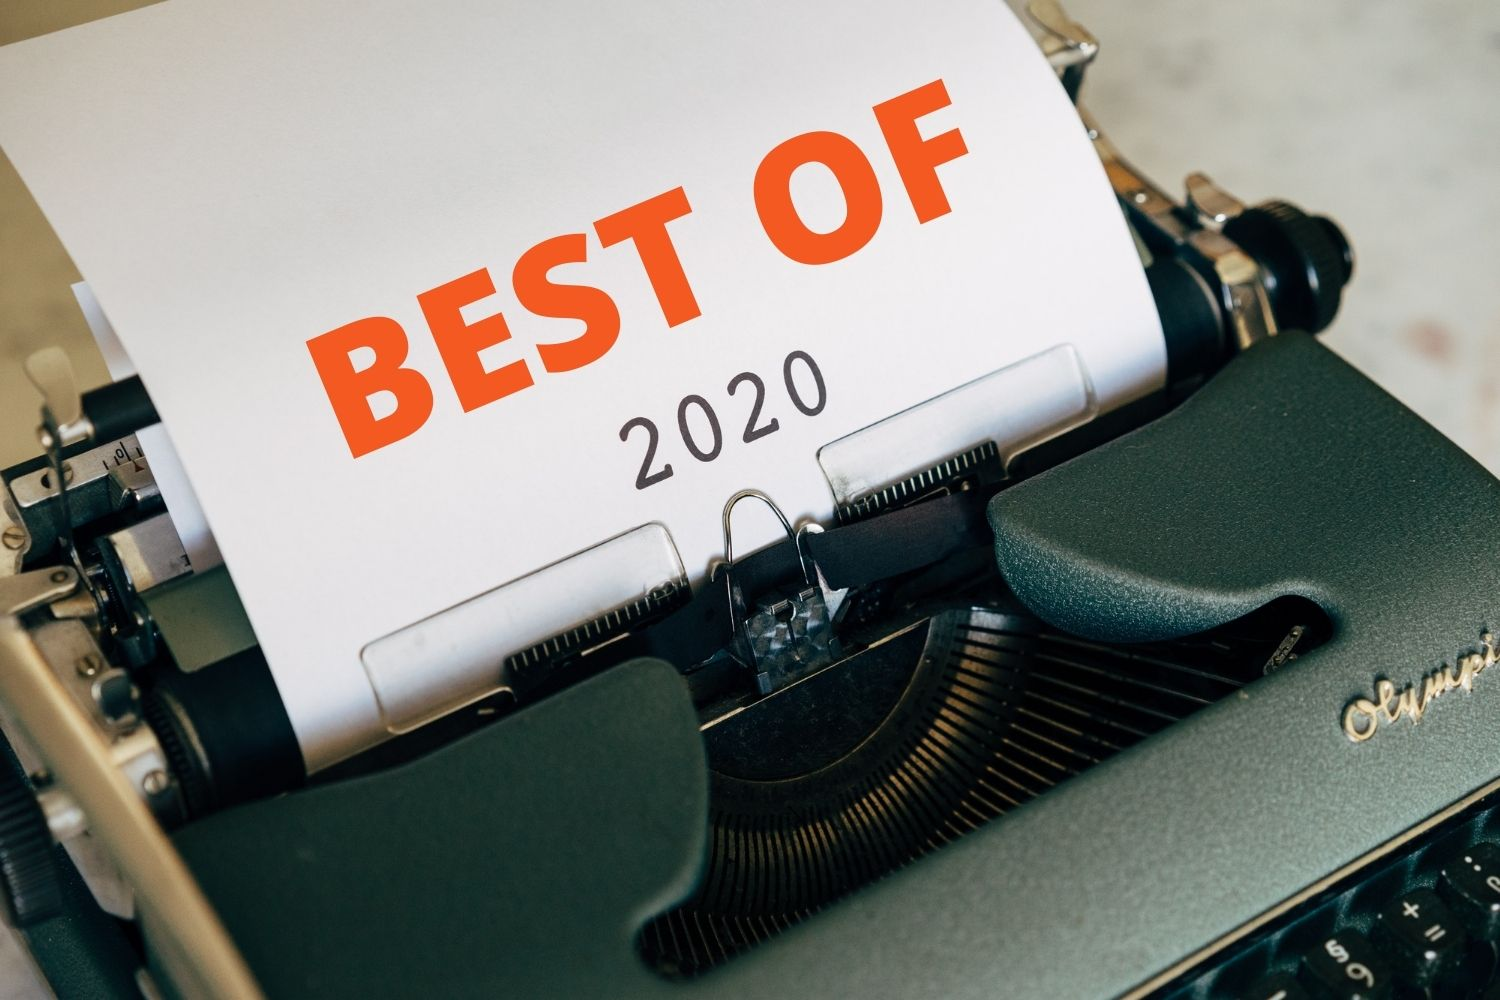 Excellent.org selects the top picks of blog posts from 2020 and thus reports on content marketing, unique selling proposition, home office, trust funnel and user experience, the picture shows a typewriter with a sheet of paper saying Best Of 2020